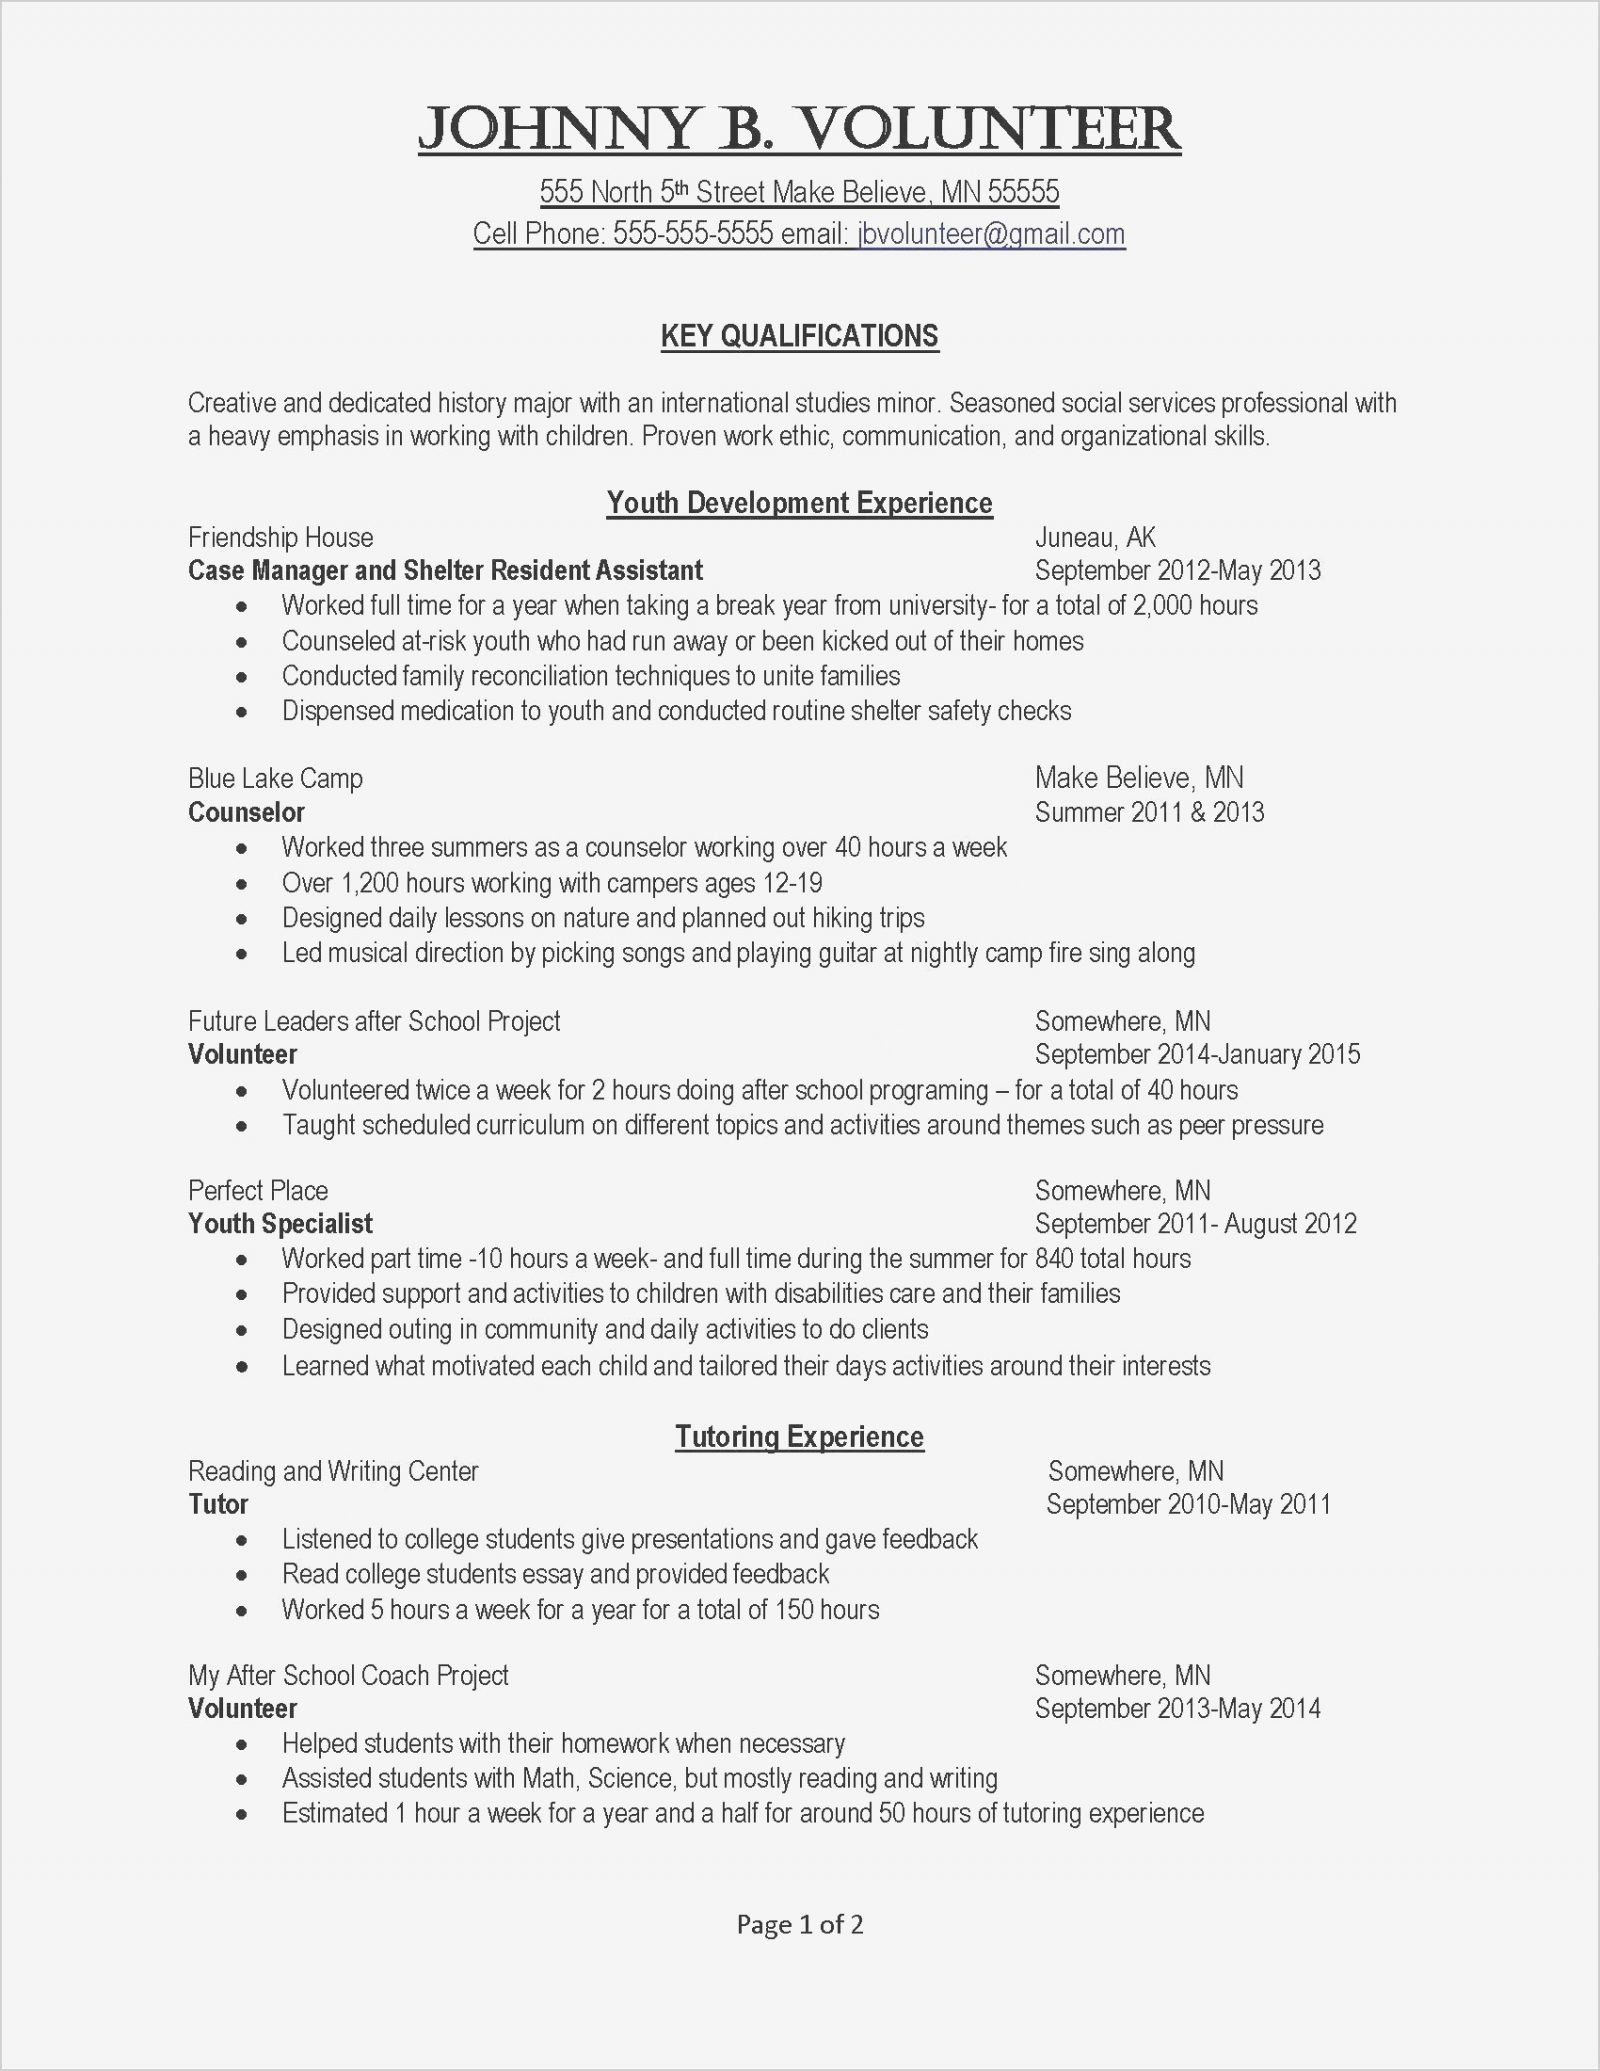 Resume Samples For Freshers Fresh Lecturer Resume Sample Pdf Valid Template College Fresher In 2020 Resume Examples Teacher Resume Examples Resume Skills